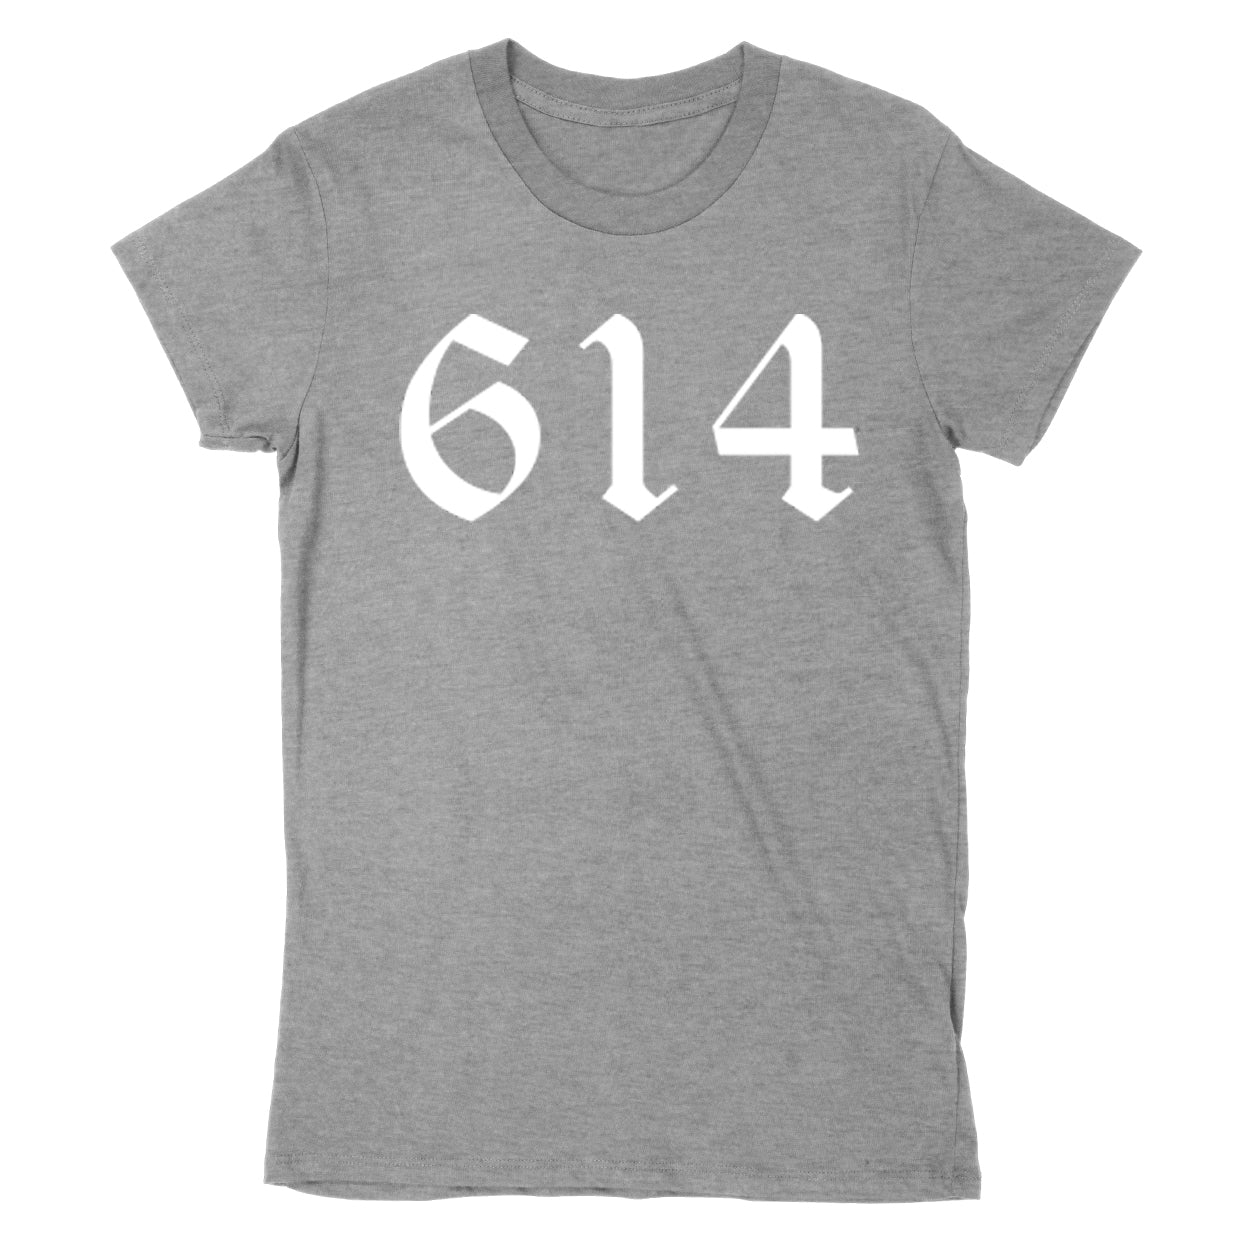 614 White Women's T-Shirt - Clothe Ohio - Soft Ohio Shirts